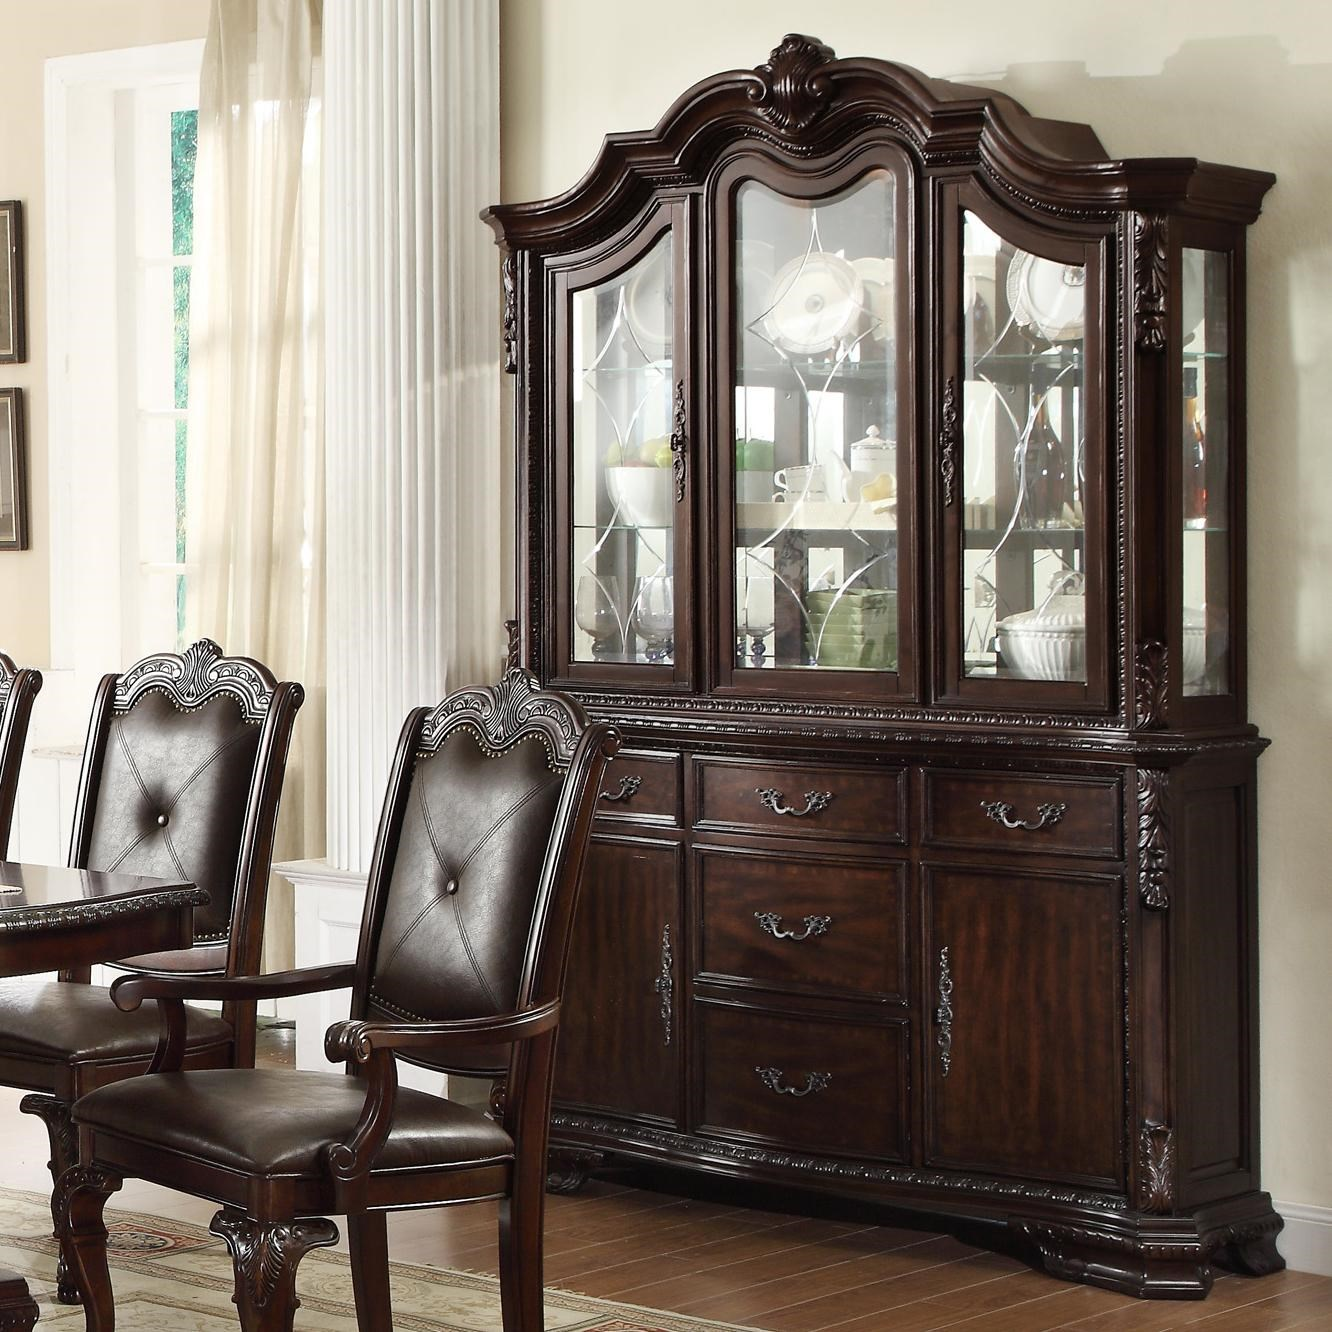 Ordinaire Miskelly Furniture